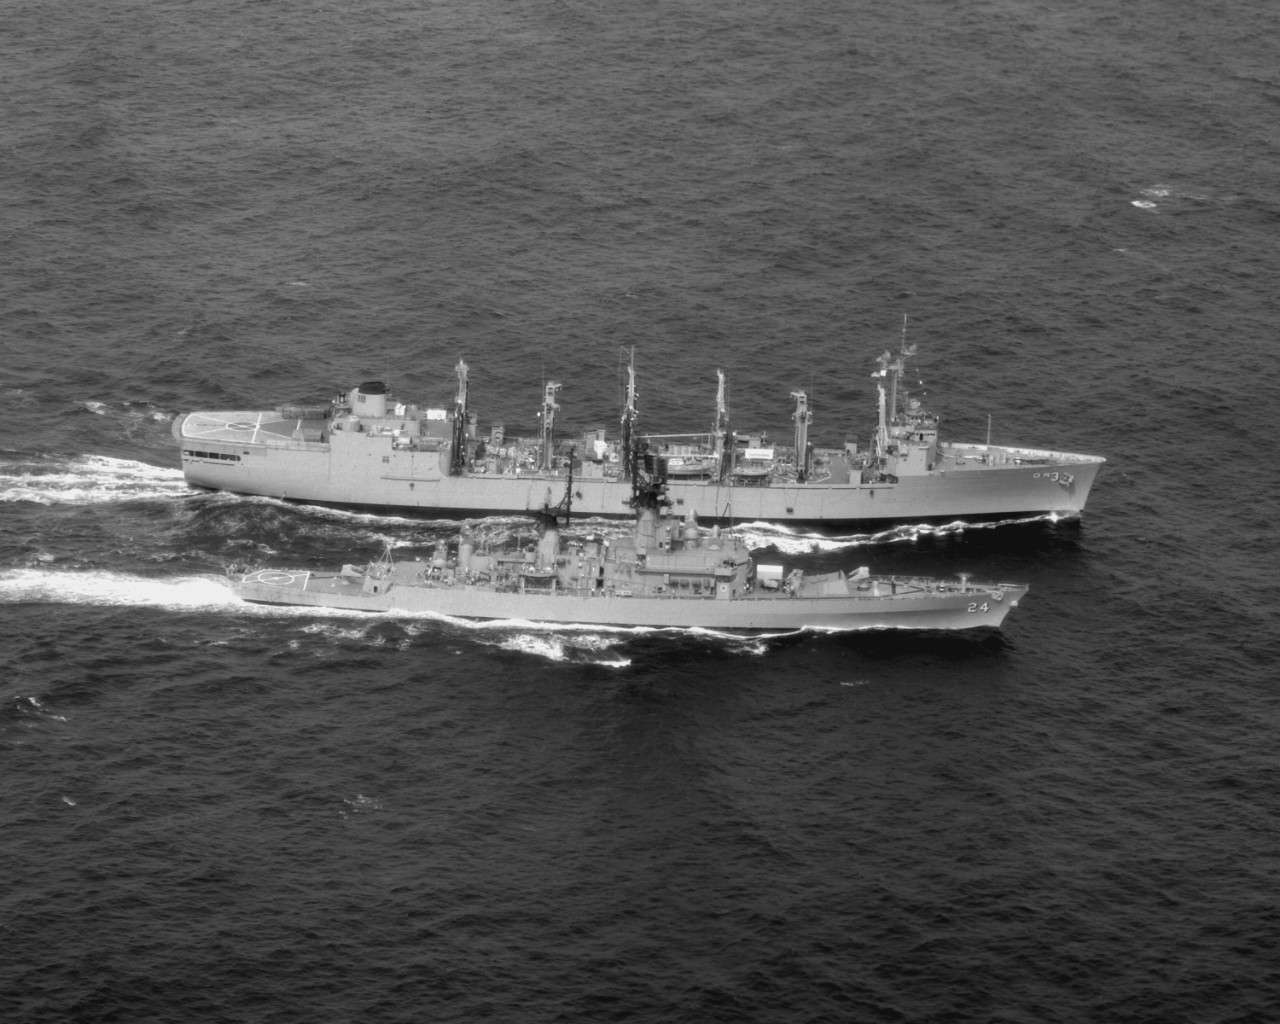 Guided missile frigate Reeves (DLG-24) steams alongside Kansas City during underway replenishment operations, 1975. (U.S. Navy Photograph DN-SN-93-01364, National Archives and Records Administration, Still Pictures Division, College Park, Md.)